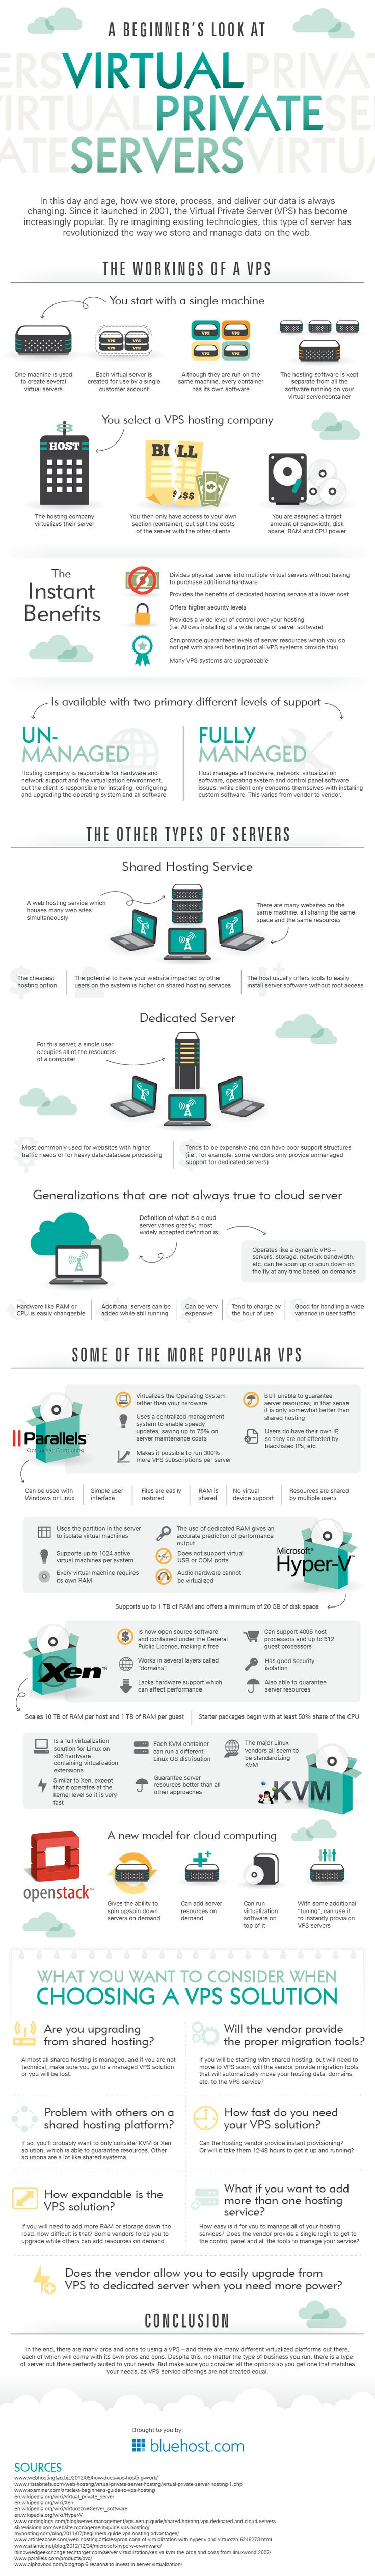 A Beginners Look At Virtual Private Servers   Infographics Display